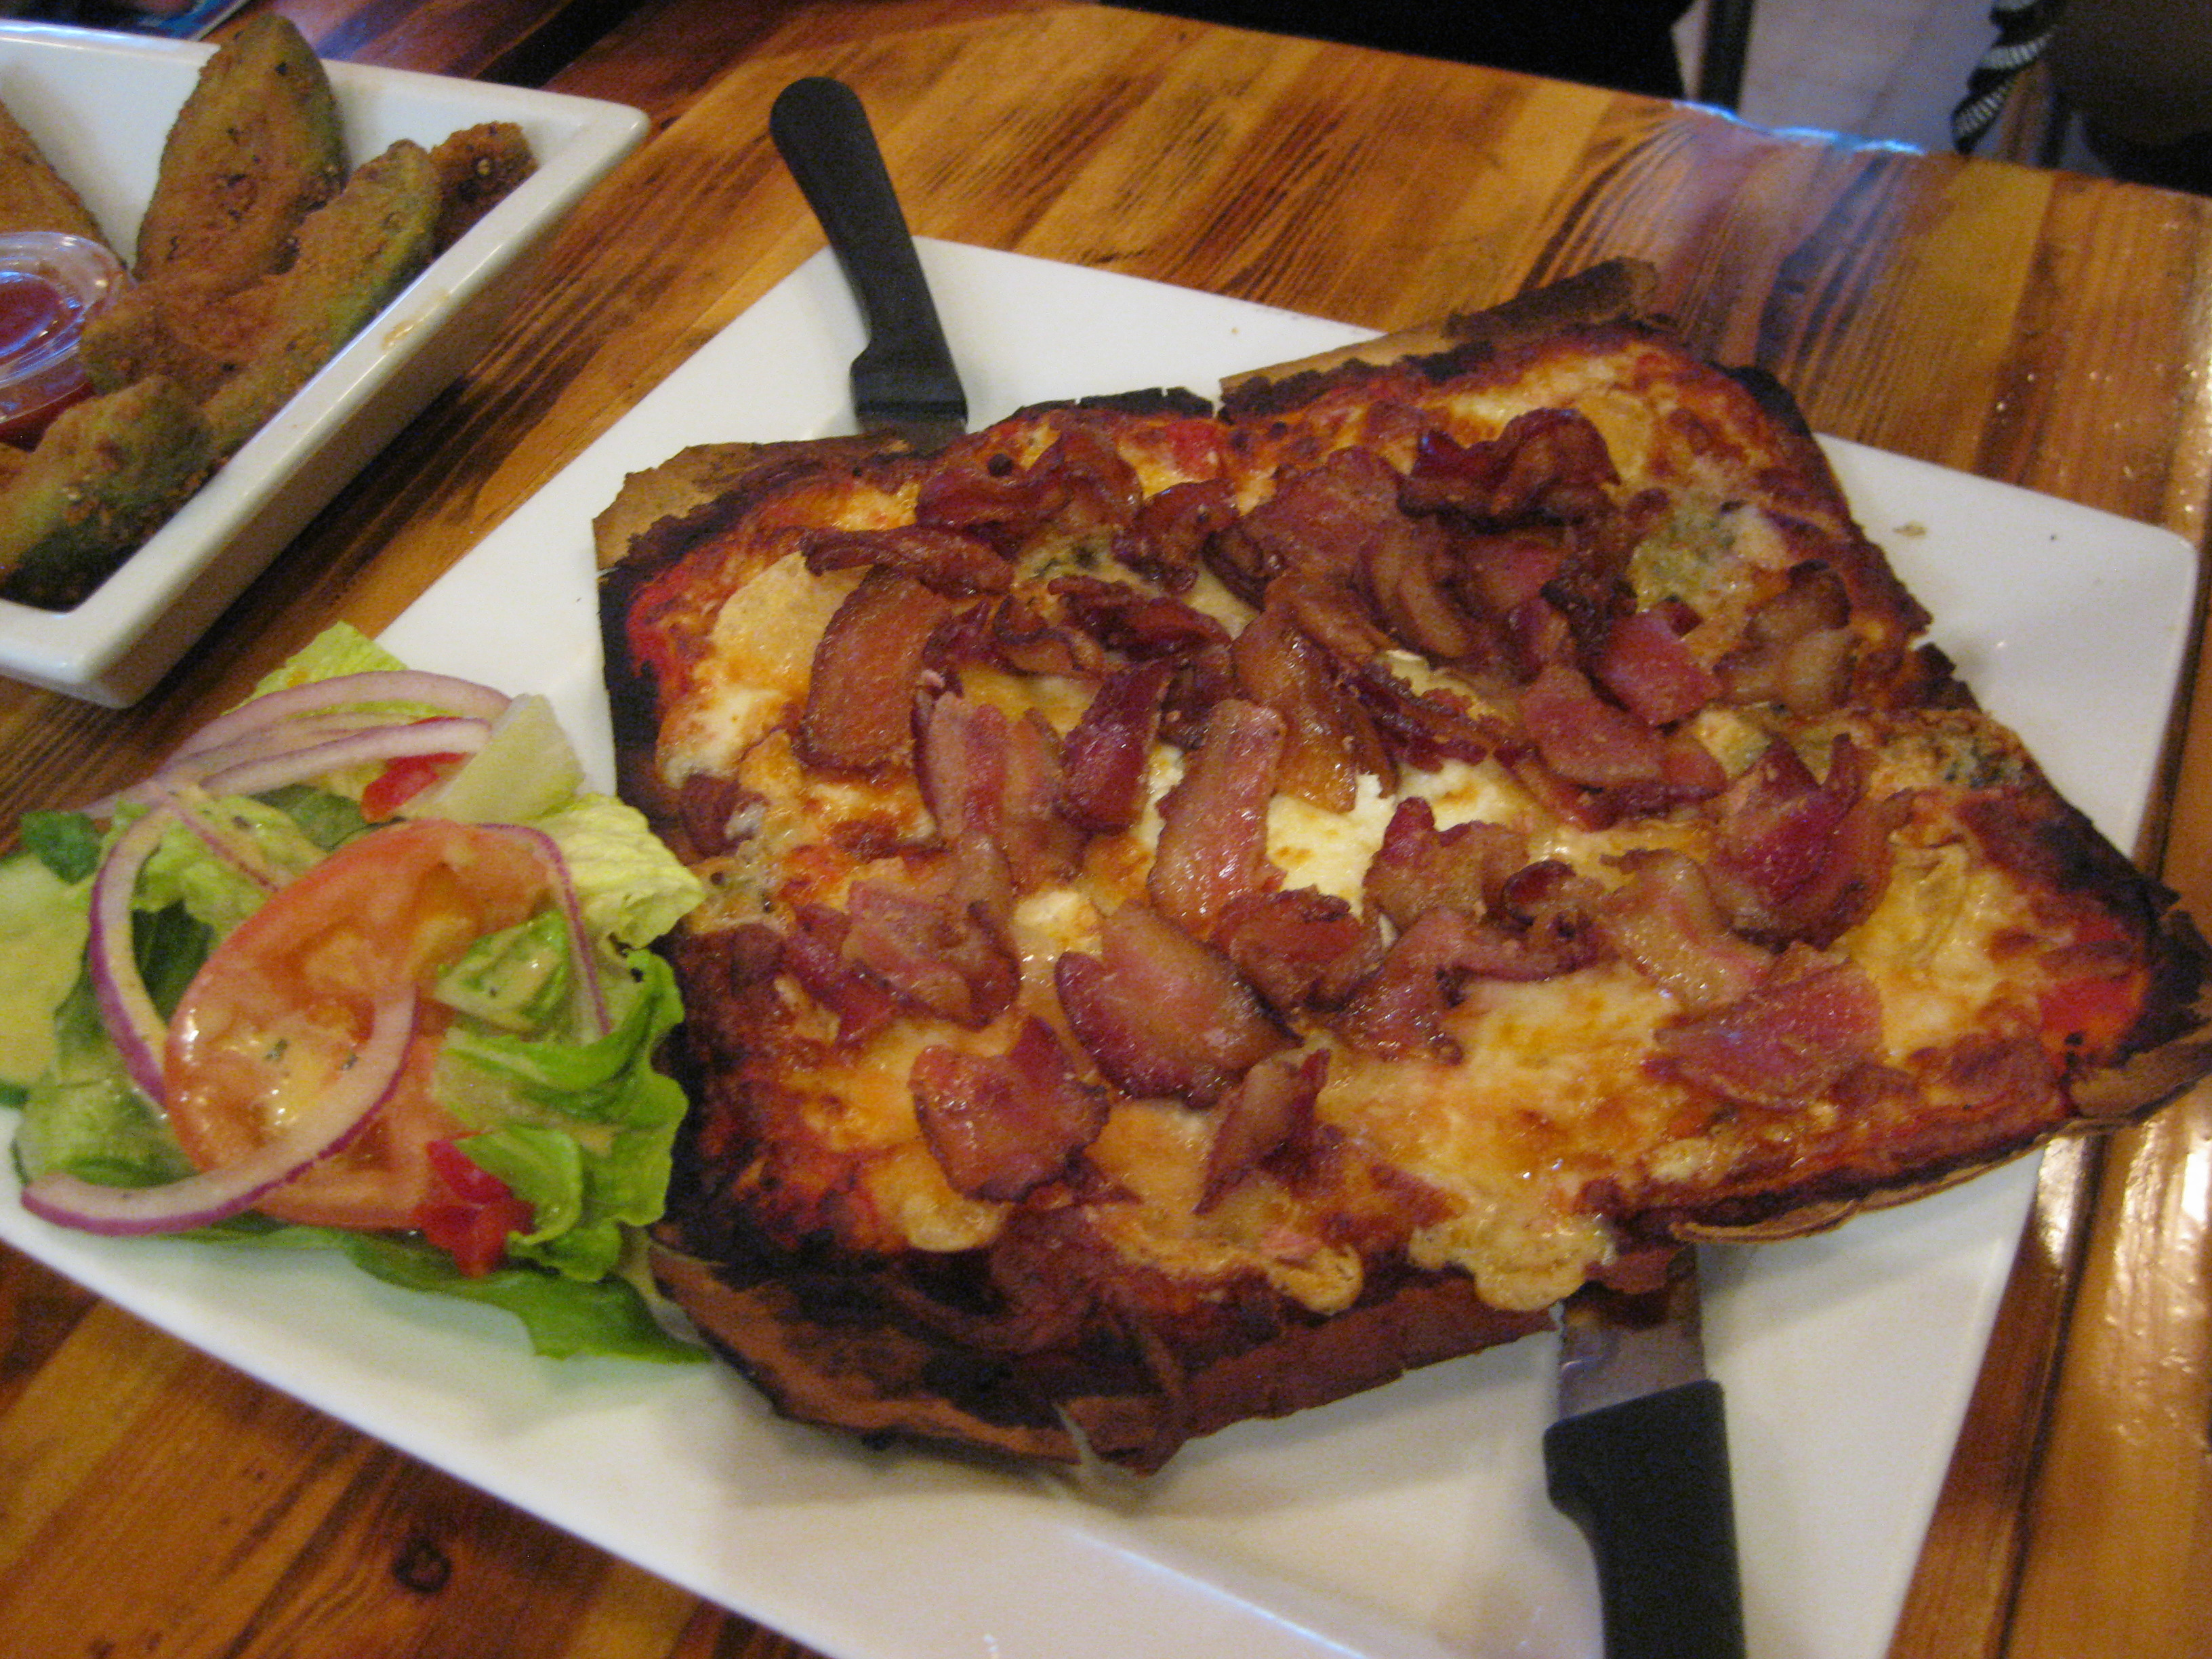 Three Cheese and Bacon Pizza - Montreal Poutine